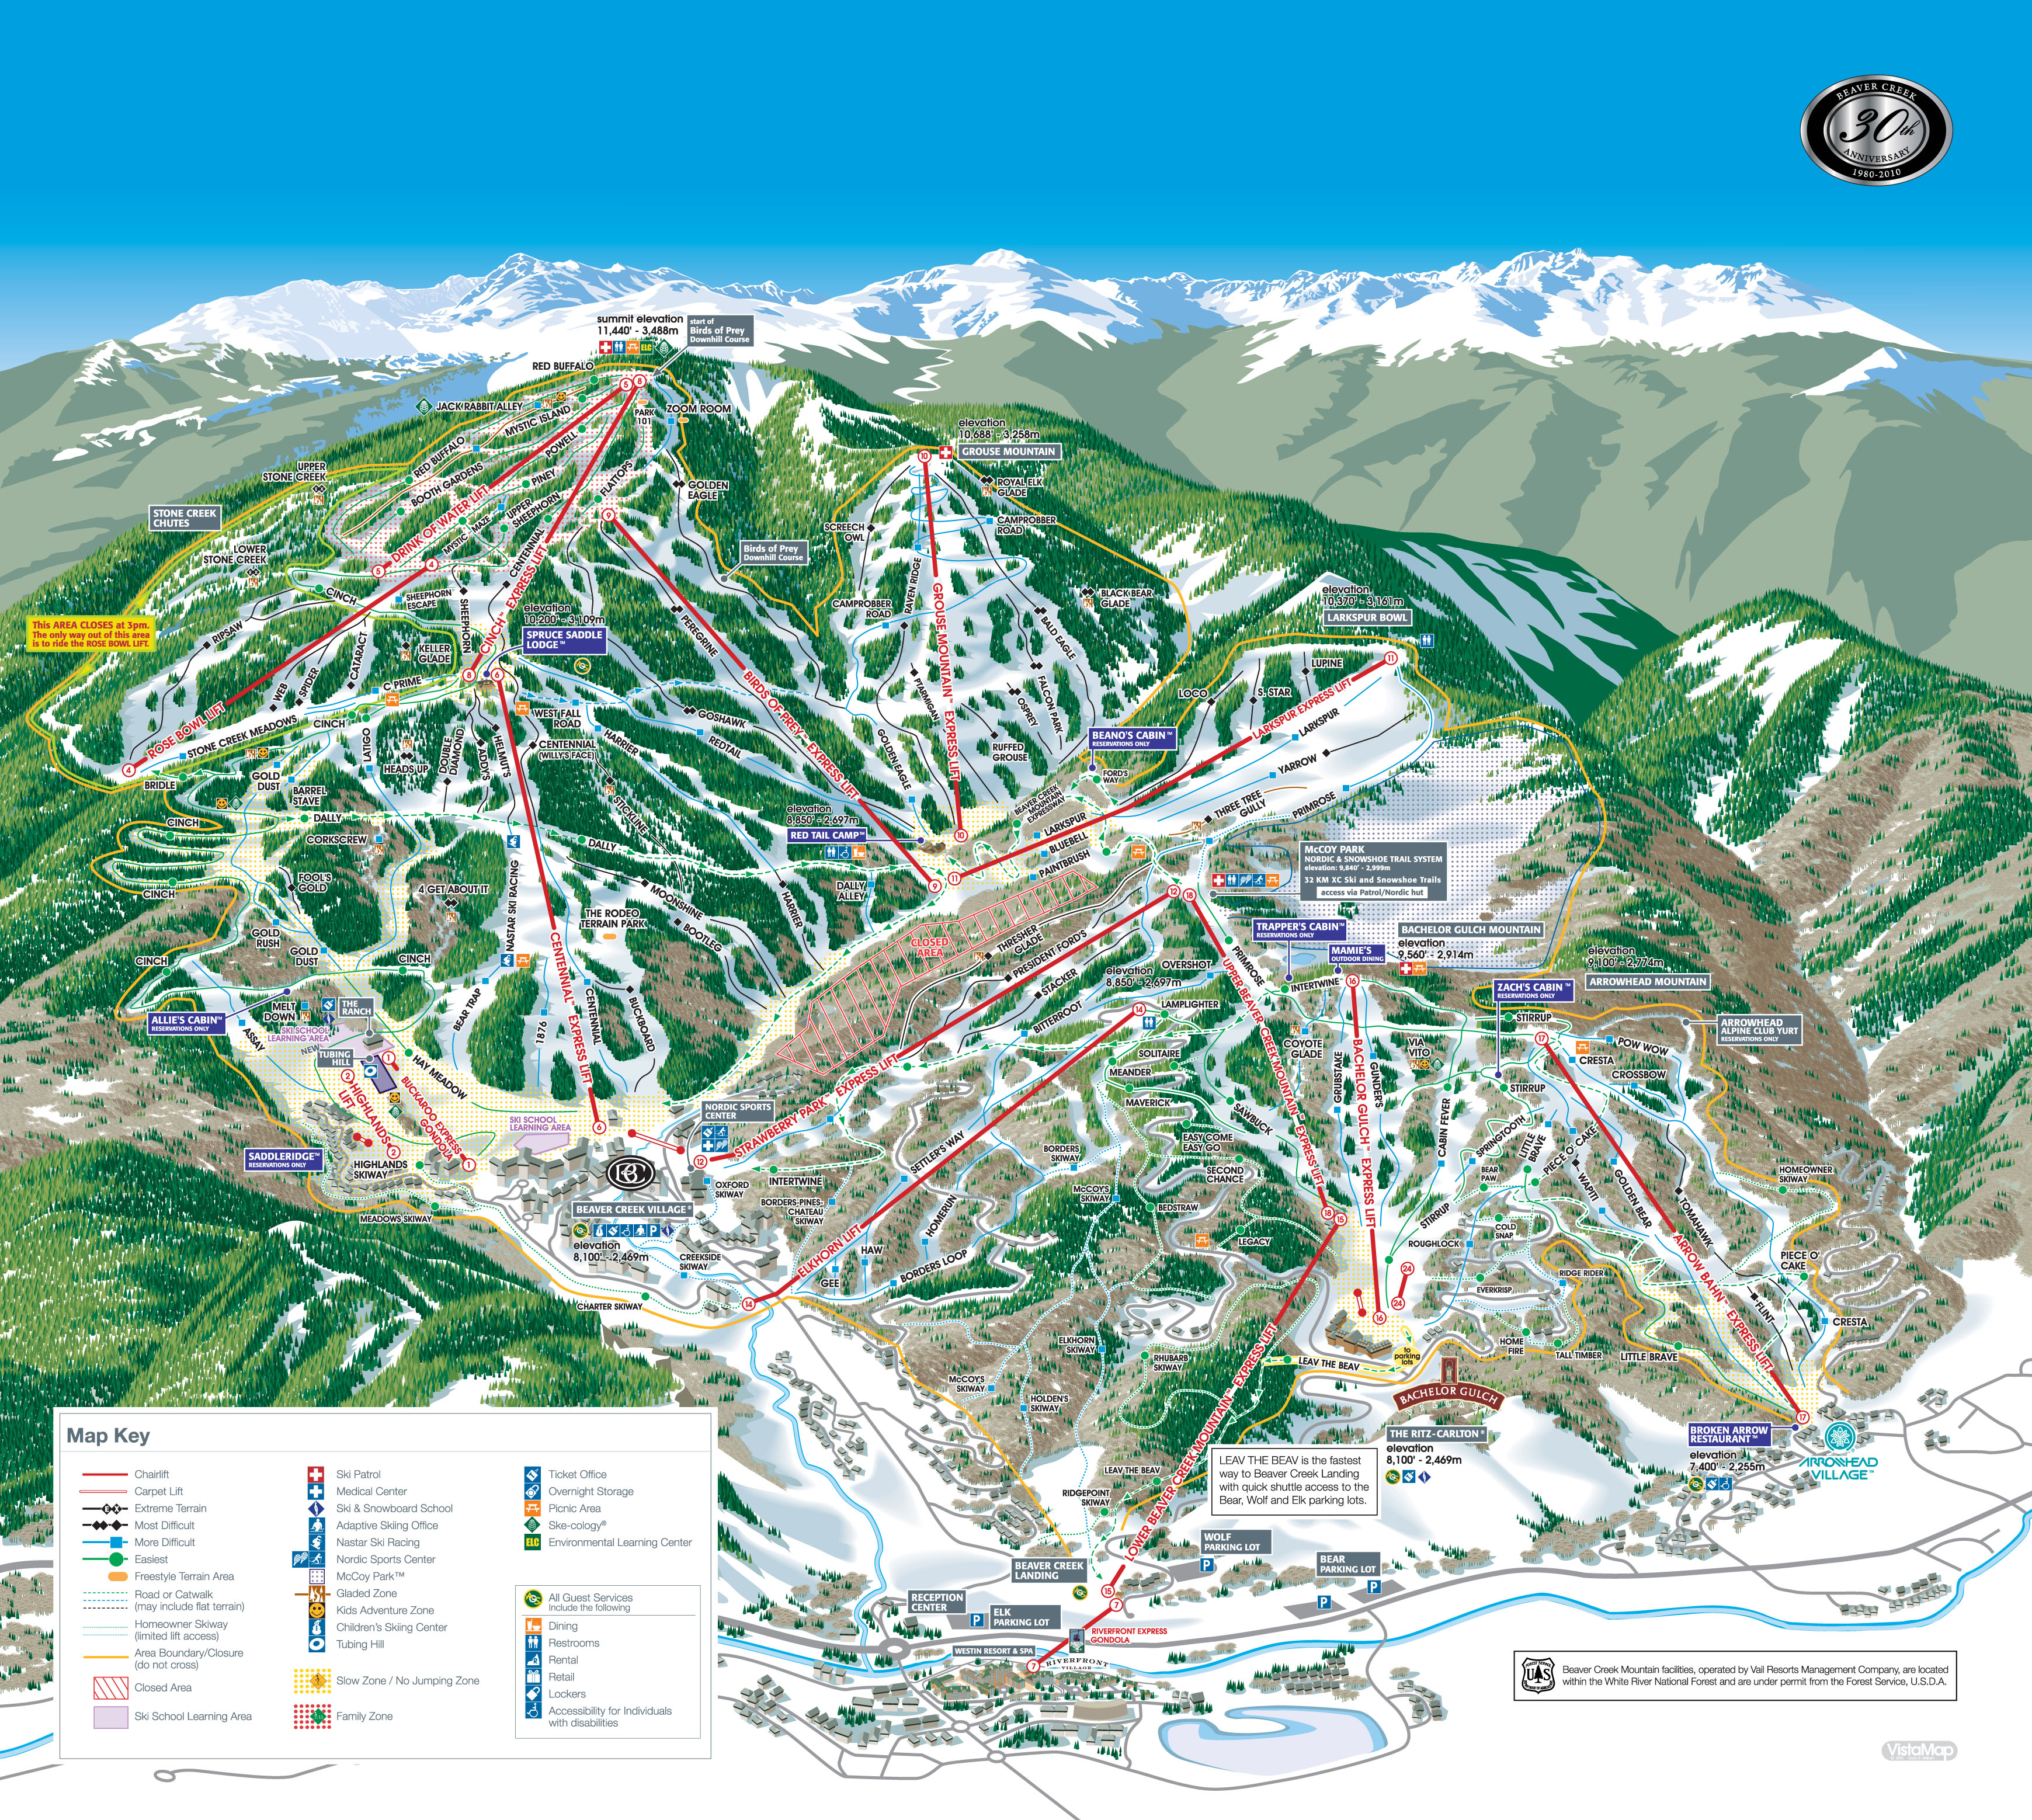 100 Aspen Highlands Skimaporg Aspen Maps Greeninfo Network Information And Mapping In The